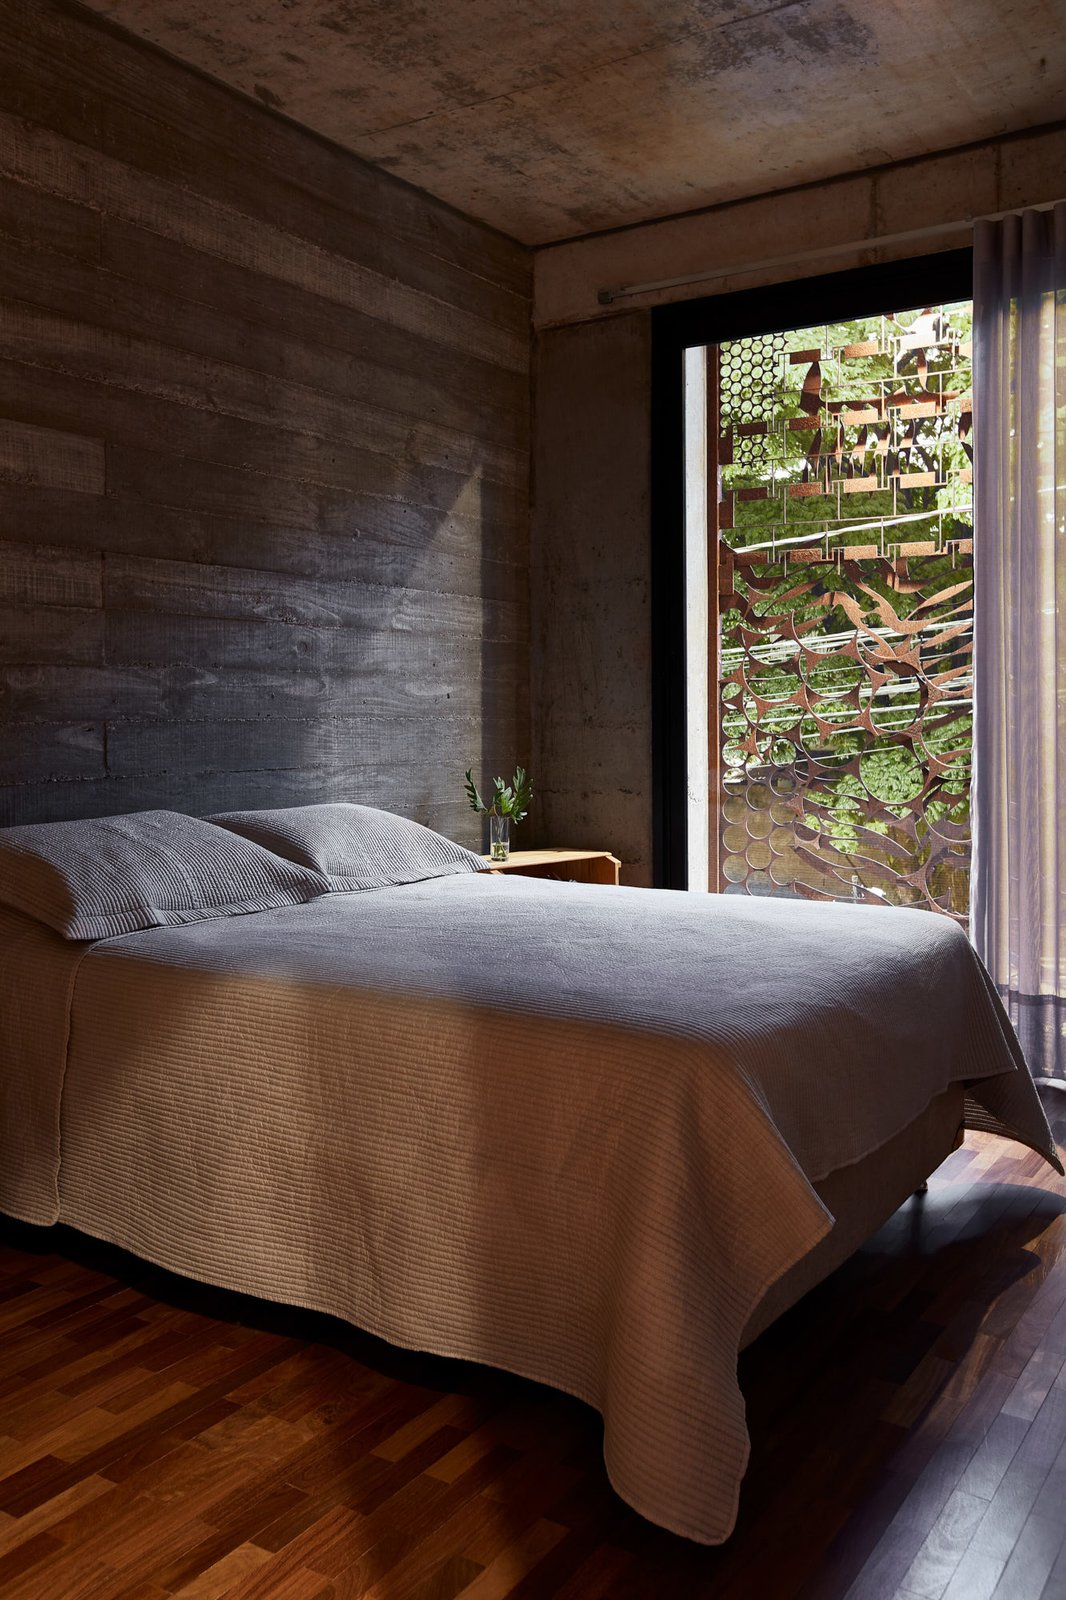 Bedroom, Bed, Medium Hardwood Floor, and Night Stands The Corten steel enclosure provides the bedrooms with more privacy, and also serves as striking decorative façade.  Photo 11 of 14 in This Slender Concrete Home in Brazil Feels Like an Urban Jungle